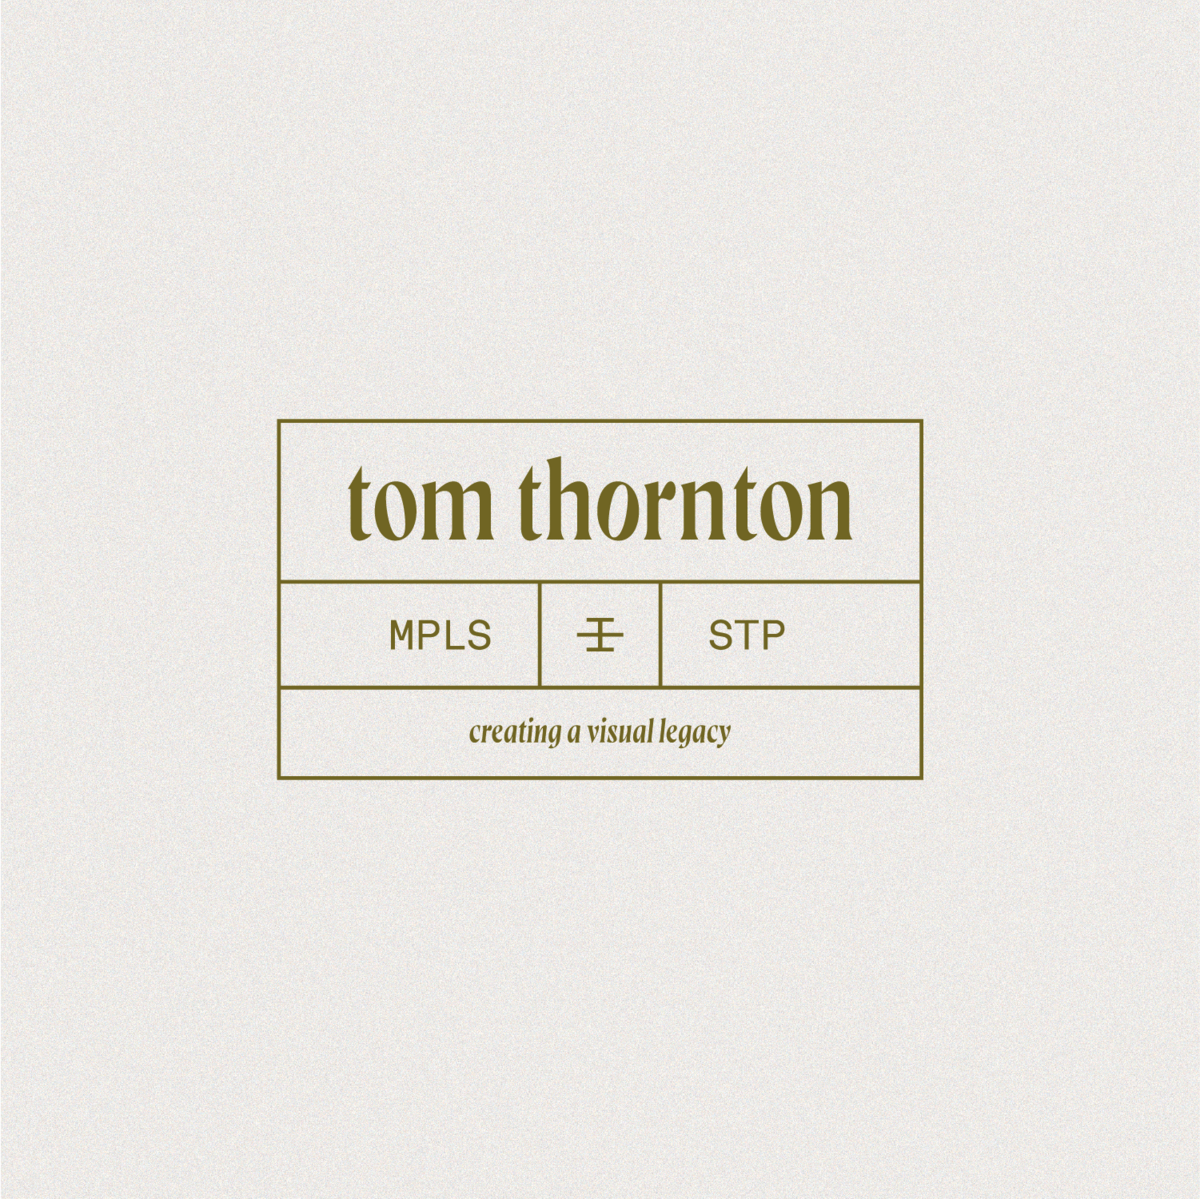 TomThornton_Two